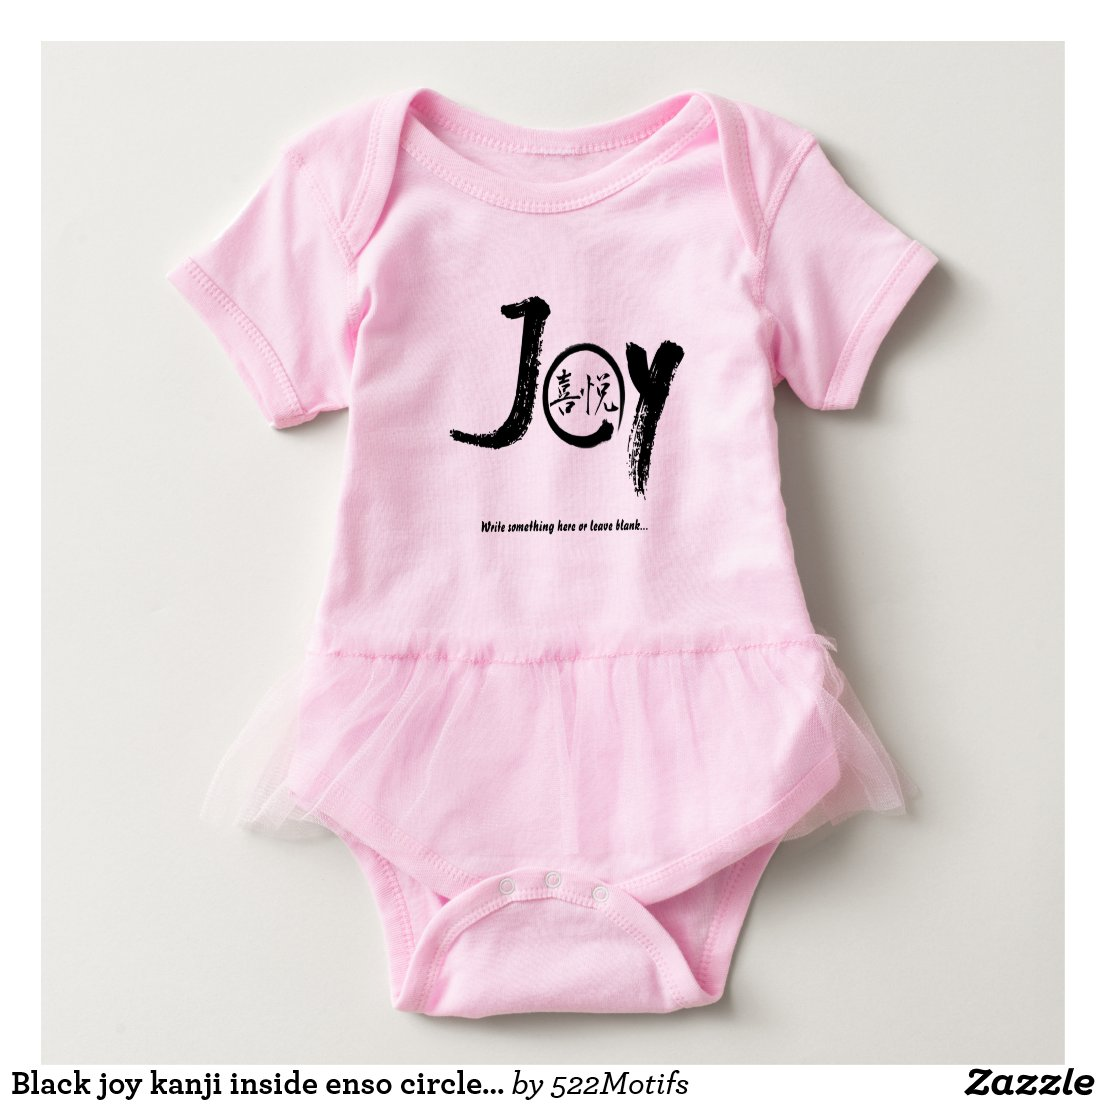 "Black joy kanji inside enso circle ""Joy"" tutu Baby Bodysuit"